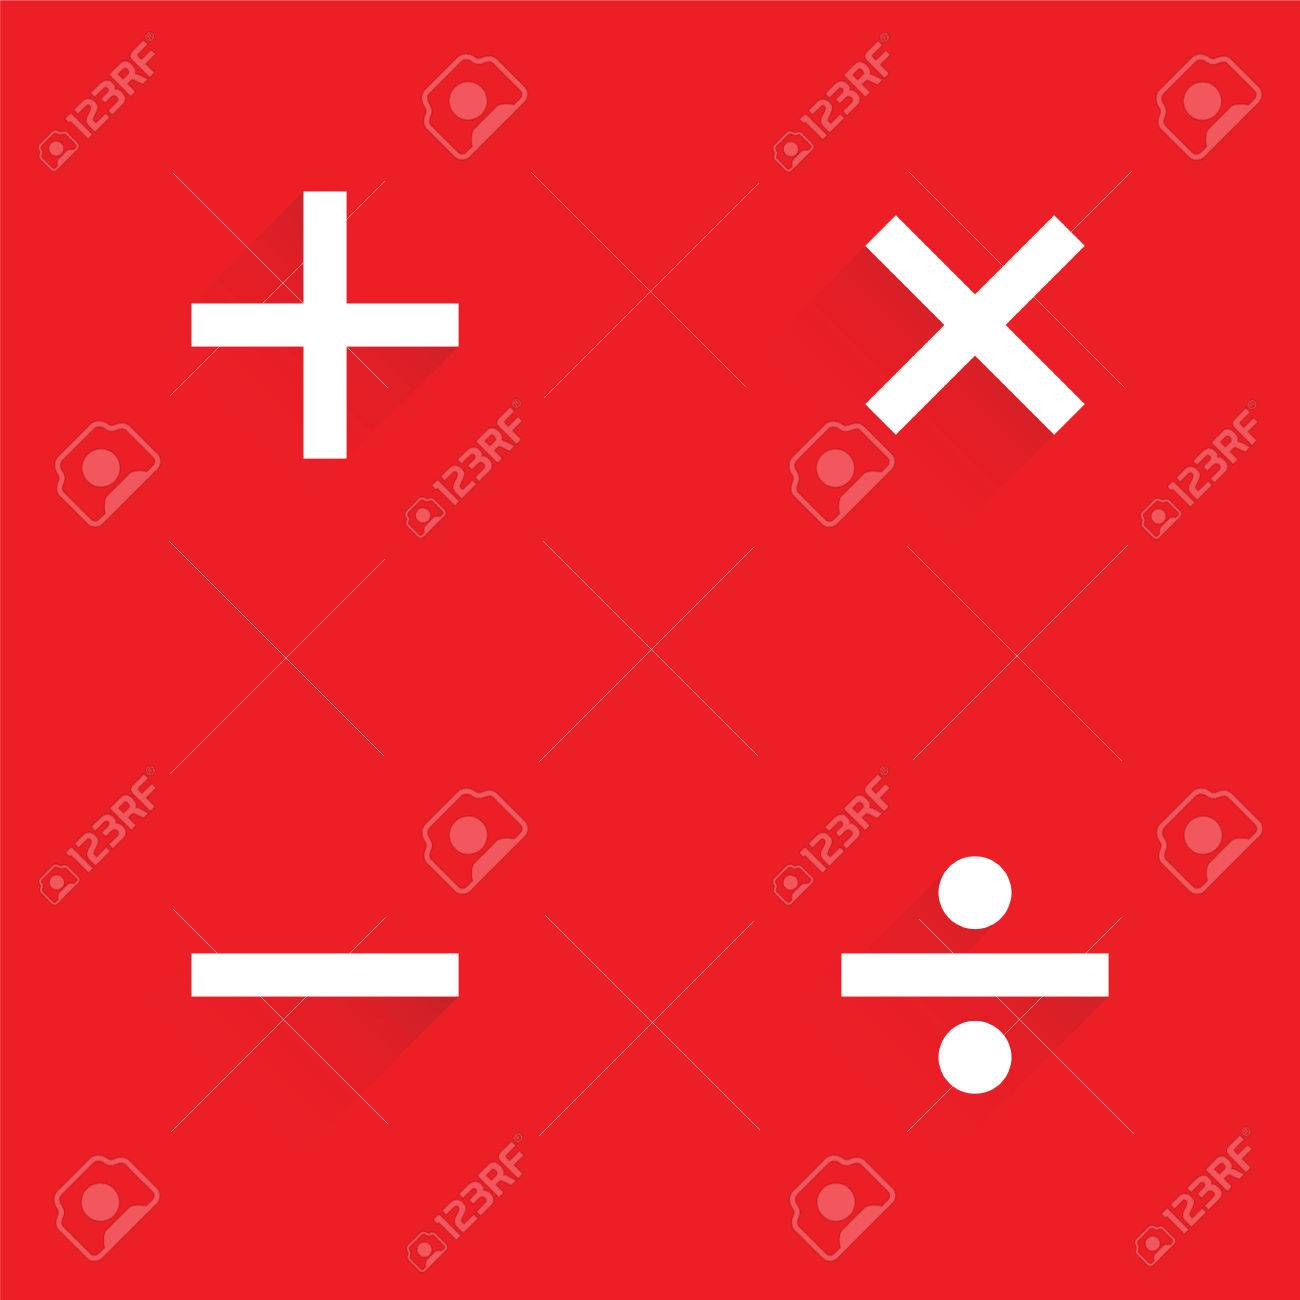 Basic Mathematical Symbols On Red Background Royalty Free Cliparts